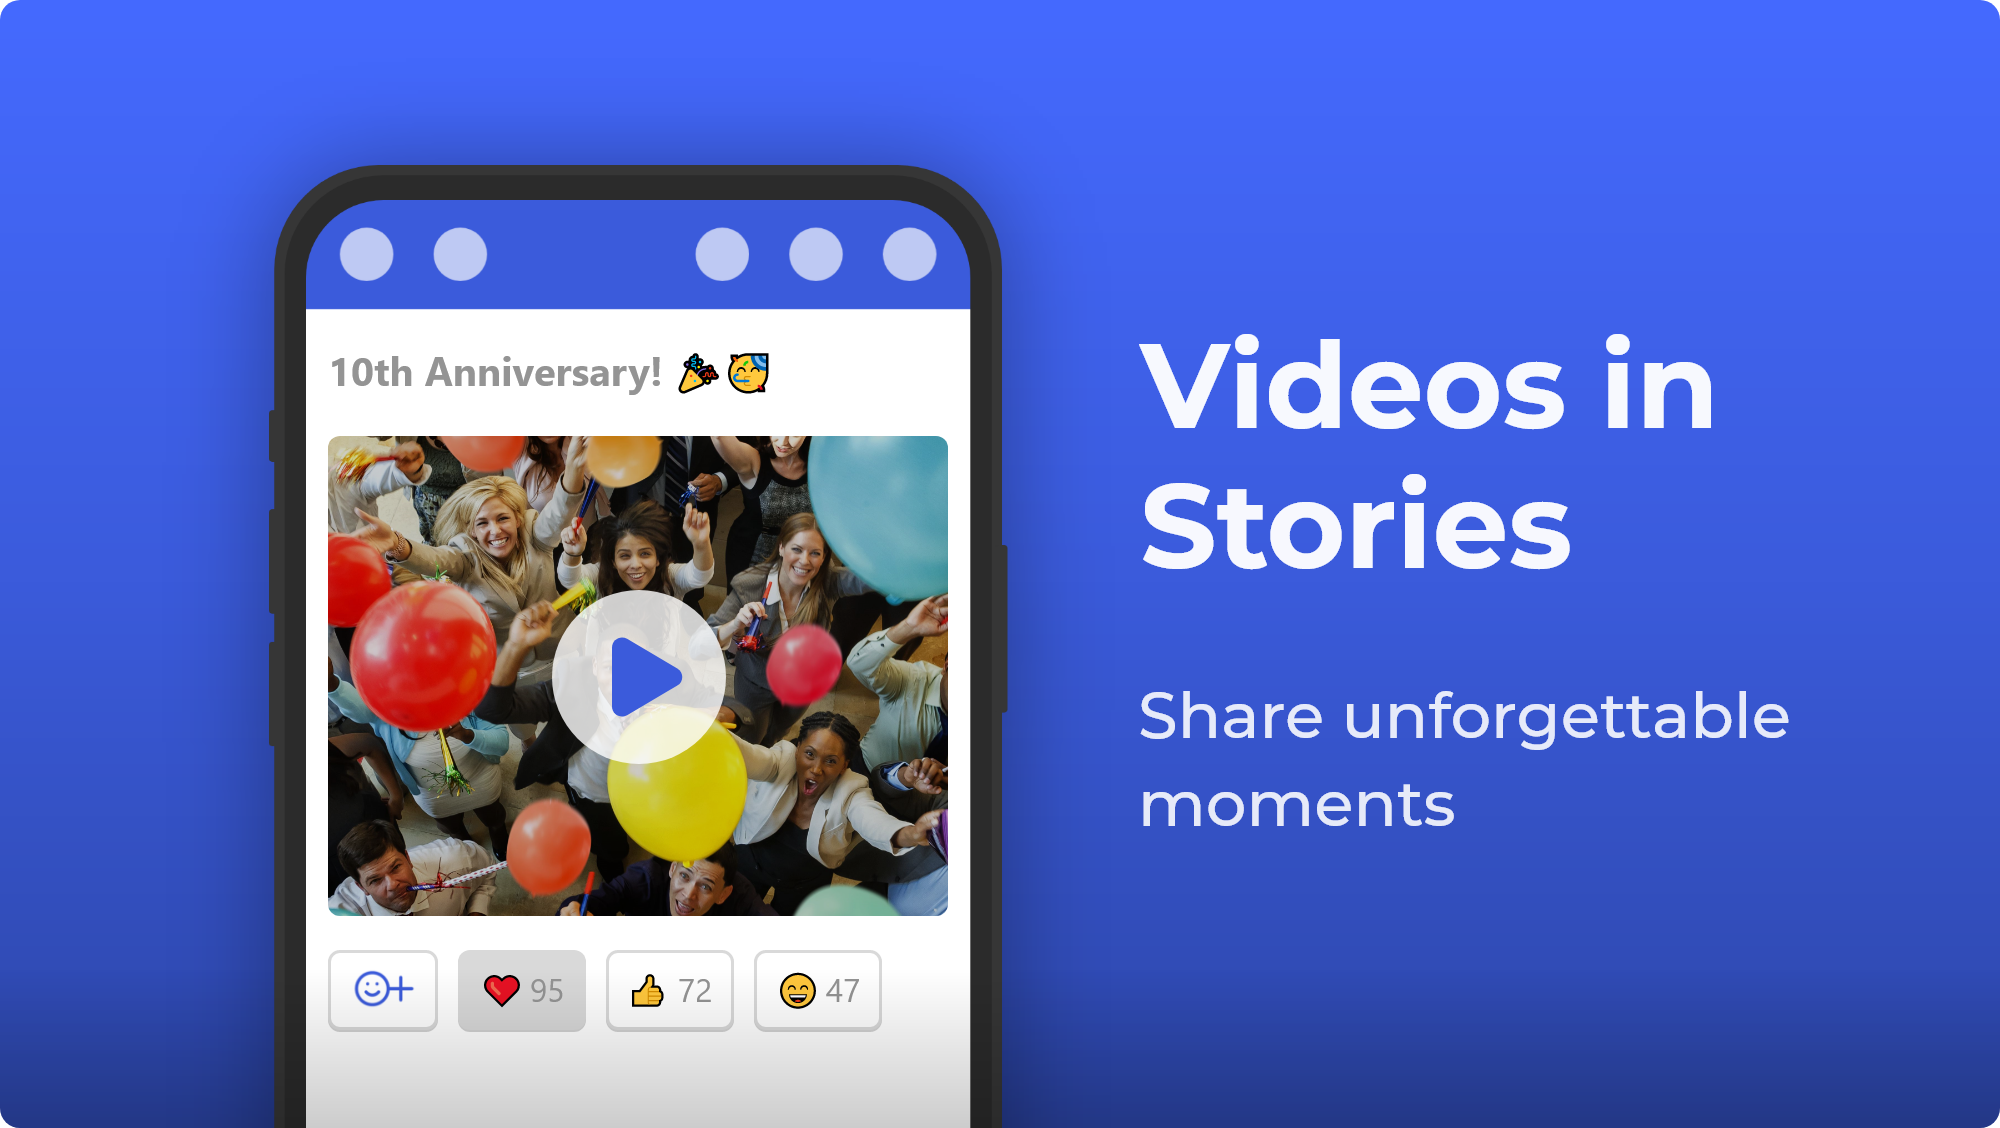 Videos in Stories are available now!